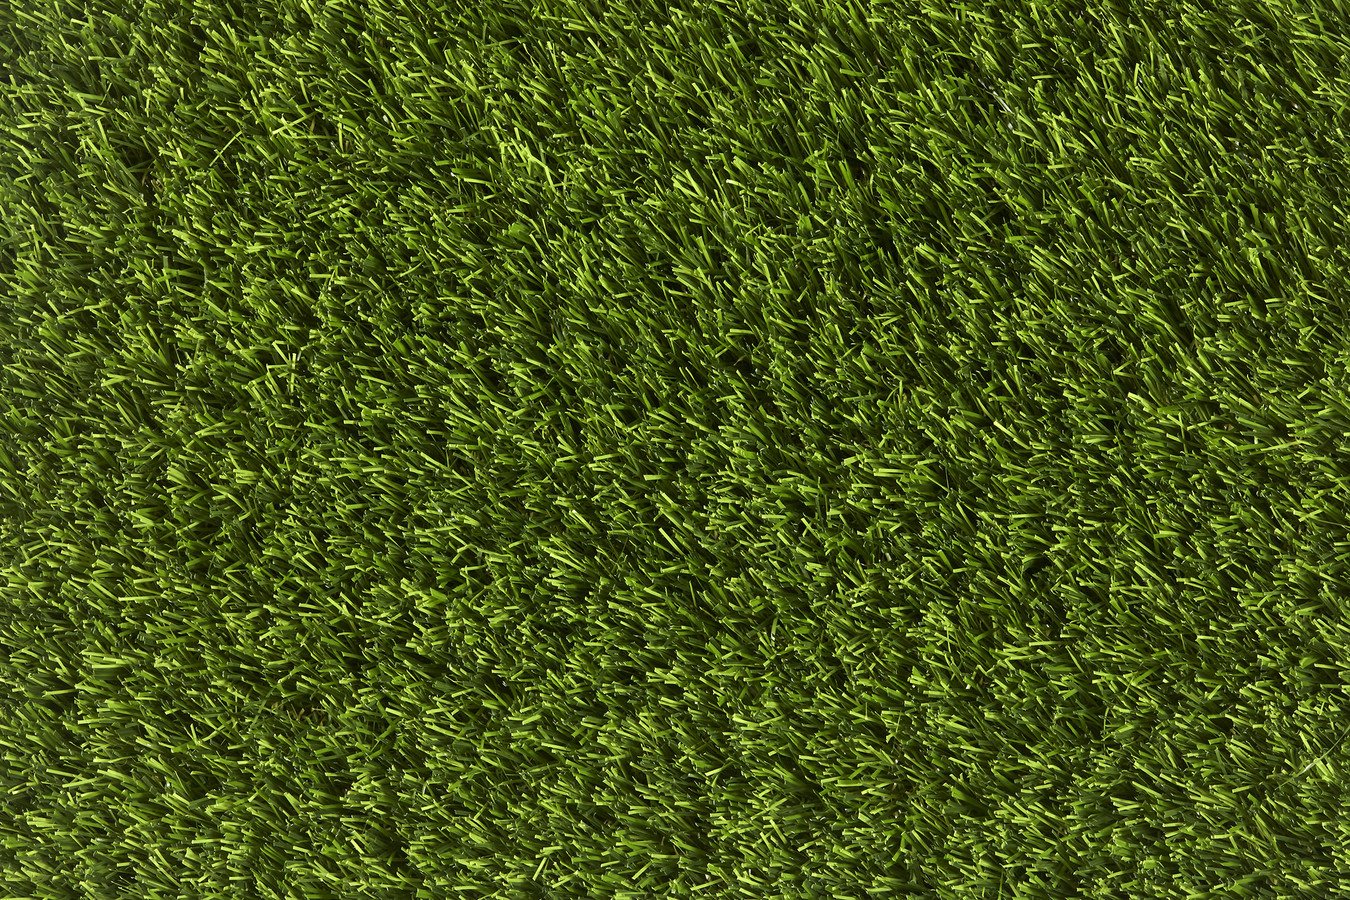 fake grass texture. Pop Into Our Surrey Showroom In Walton-on-Thames To View Extensive Collection Of Artificial Grasses And Receive Expert Advice From Vincent Flooring. Fake Grass Texture